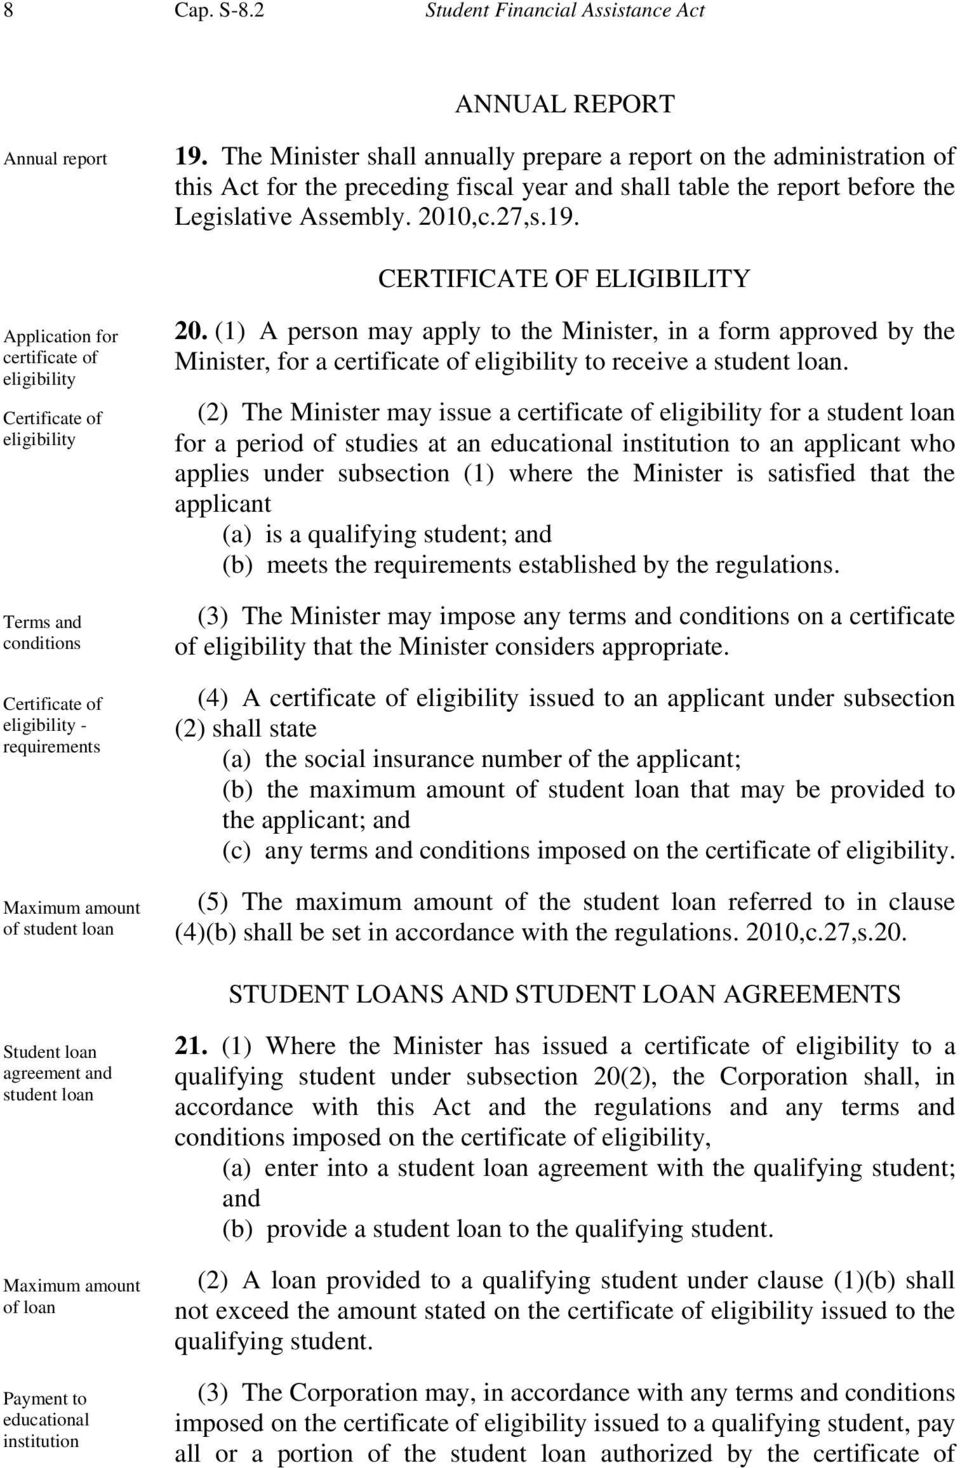 CERTIFICATE OF ELIGIBILITY Application for certificate of eligibility Certificate of eligibility Terms and conditions Certificate of eligibility - requirements Maximum amount of student loan 20.